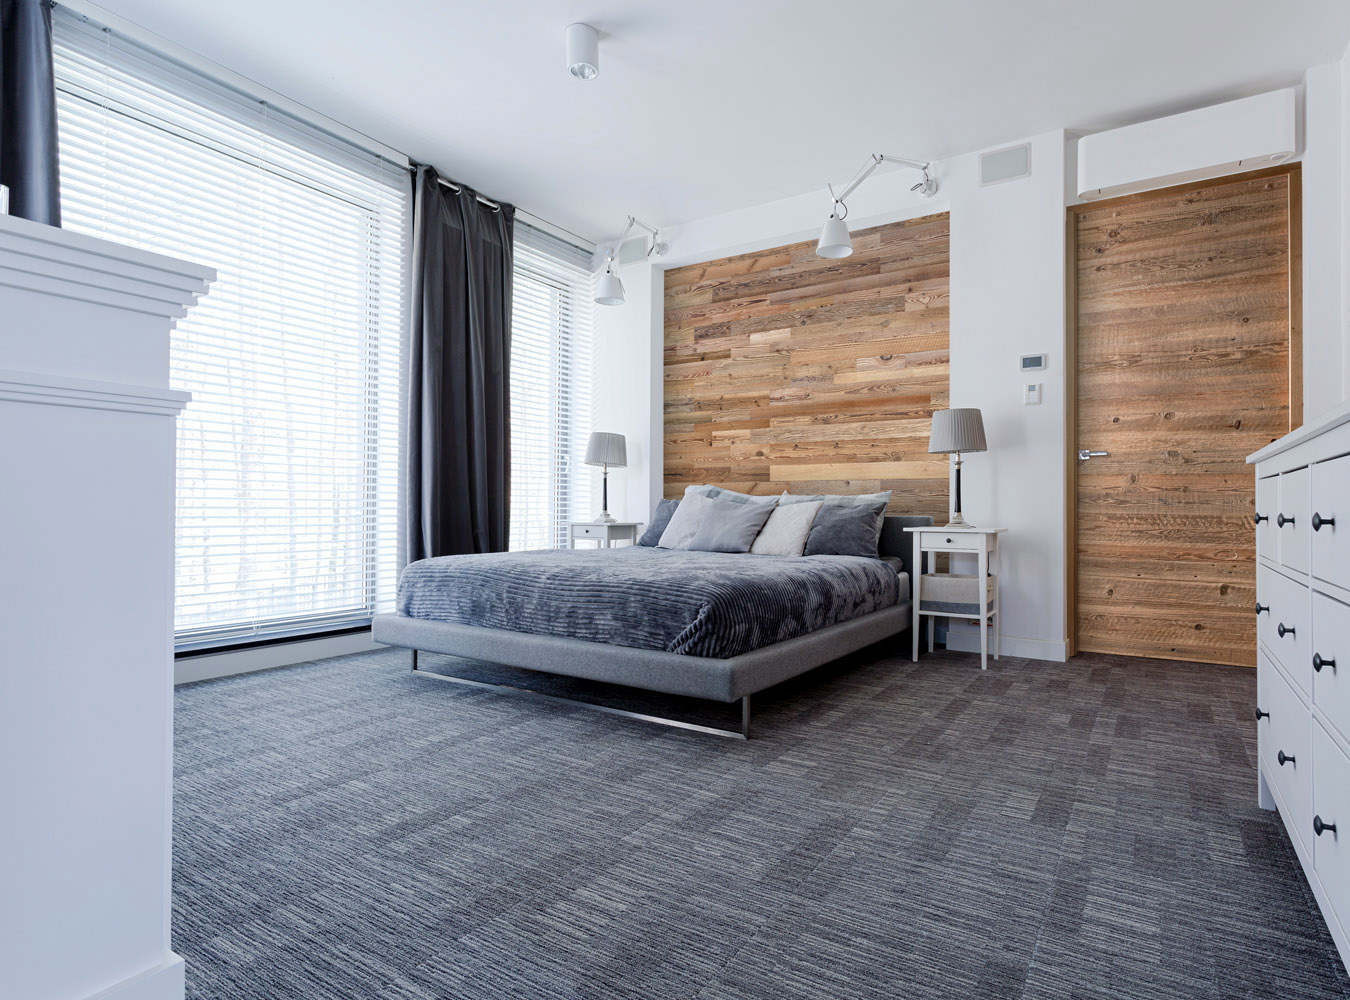 Reclaimed wood wall behind bed and in doors